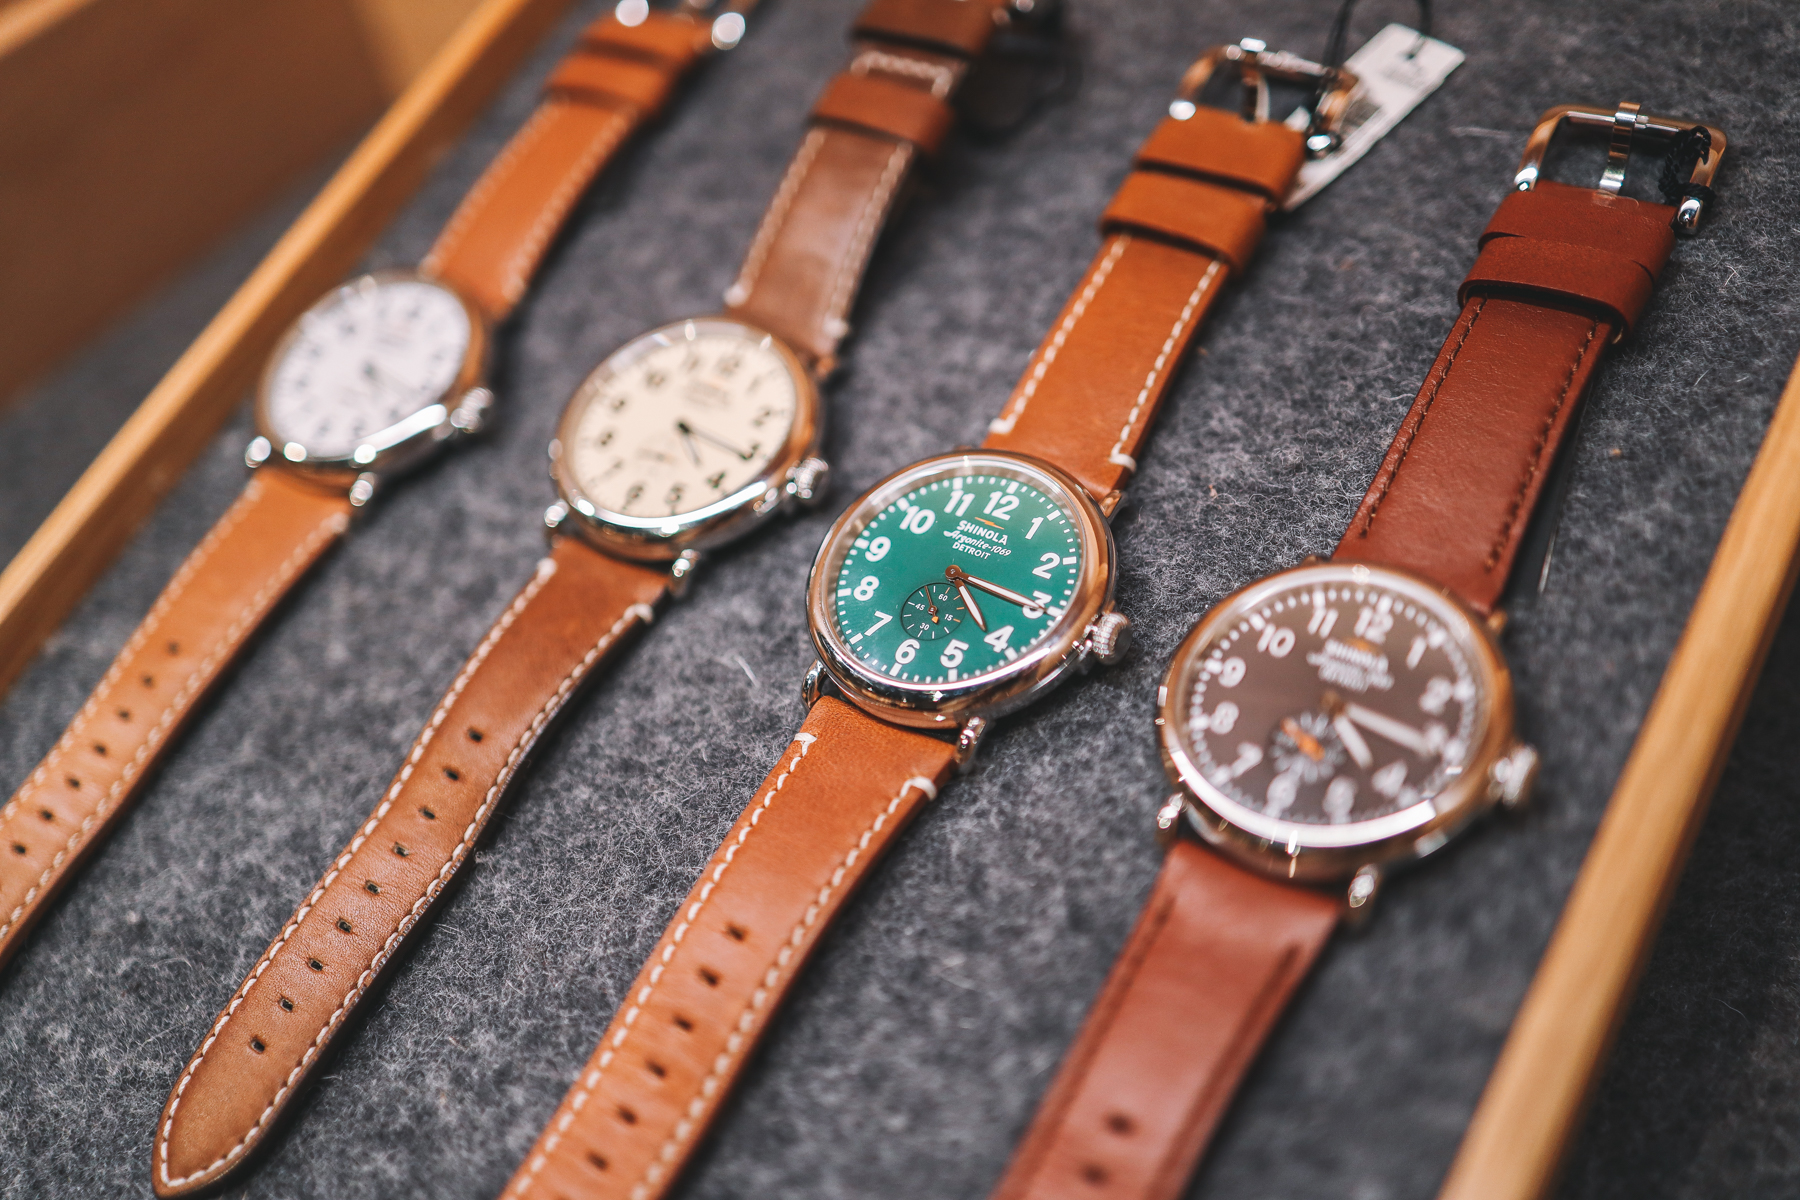 Preppy men's watches